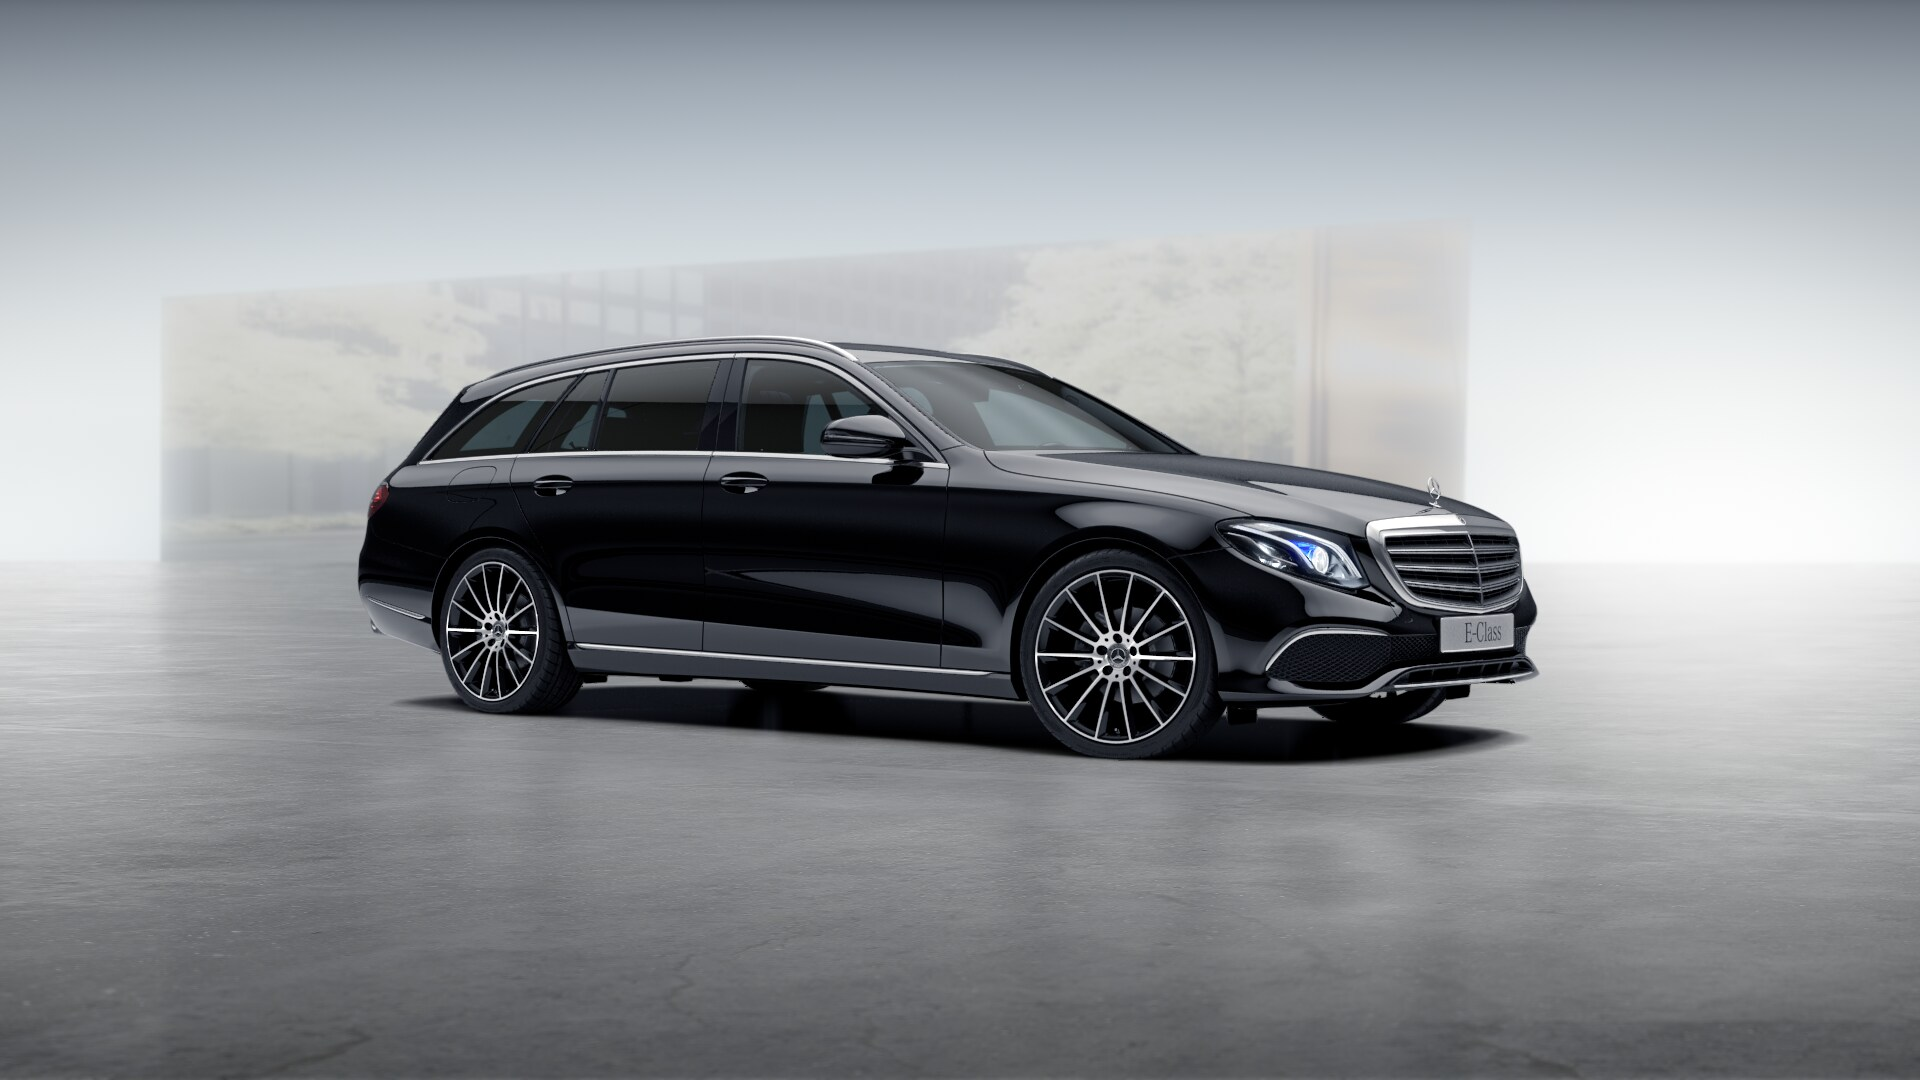 Mercedes benz estate e220d 4matic t alphubel limousine for Mercedes benz address